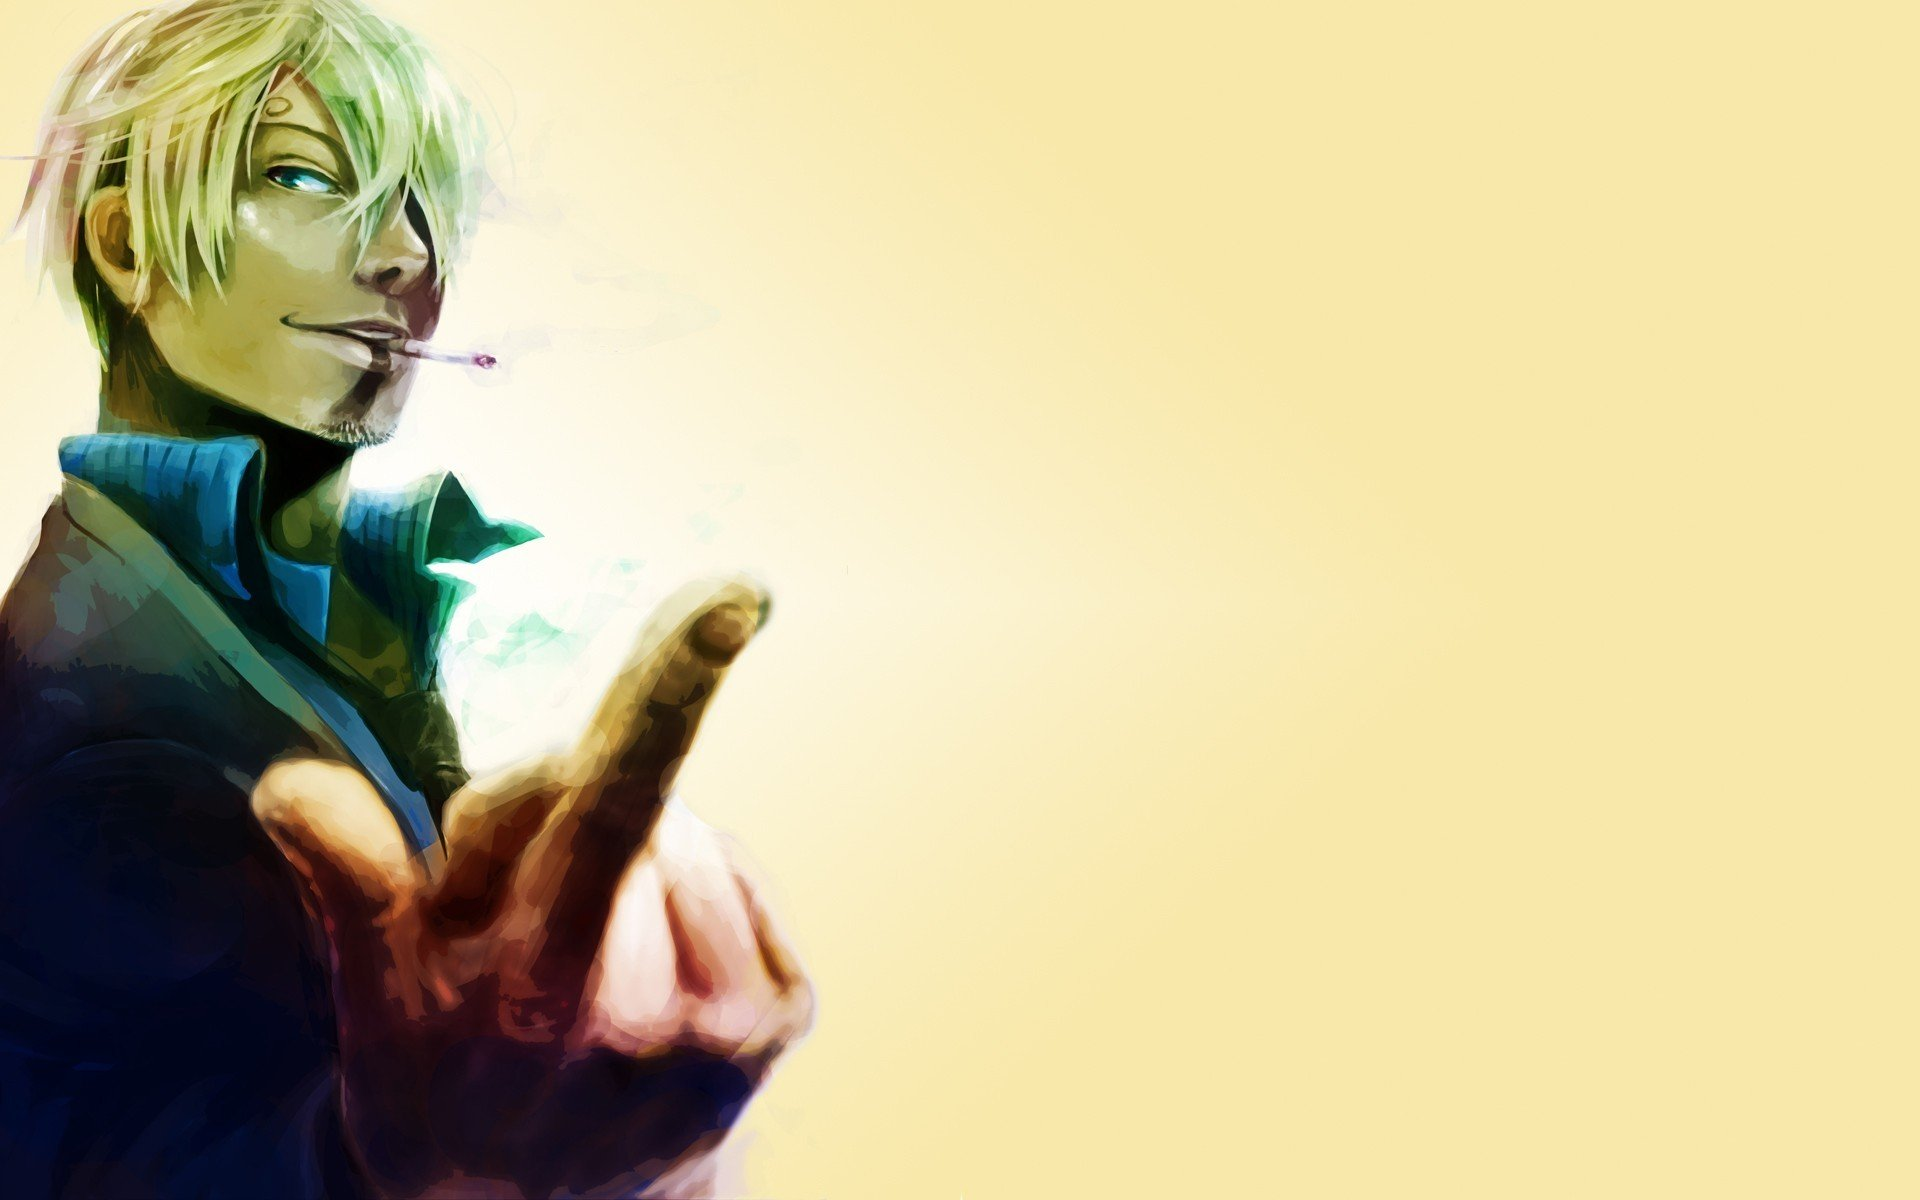 One Piece Sanji Hd Wallpapers Desktop And Mobile Images Photos